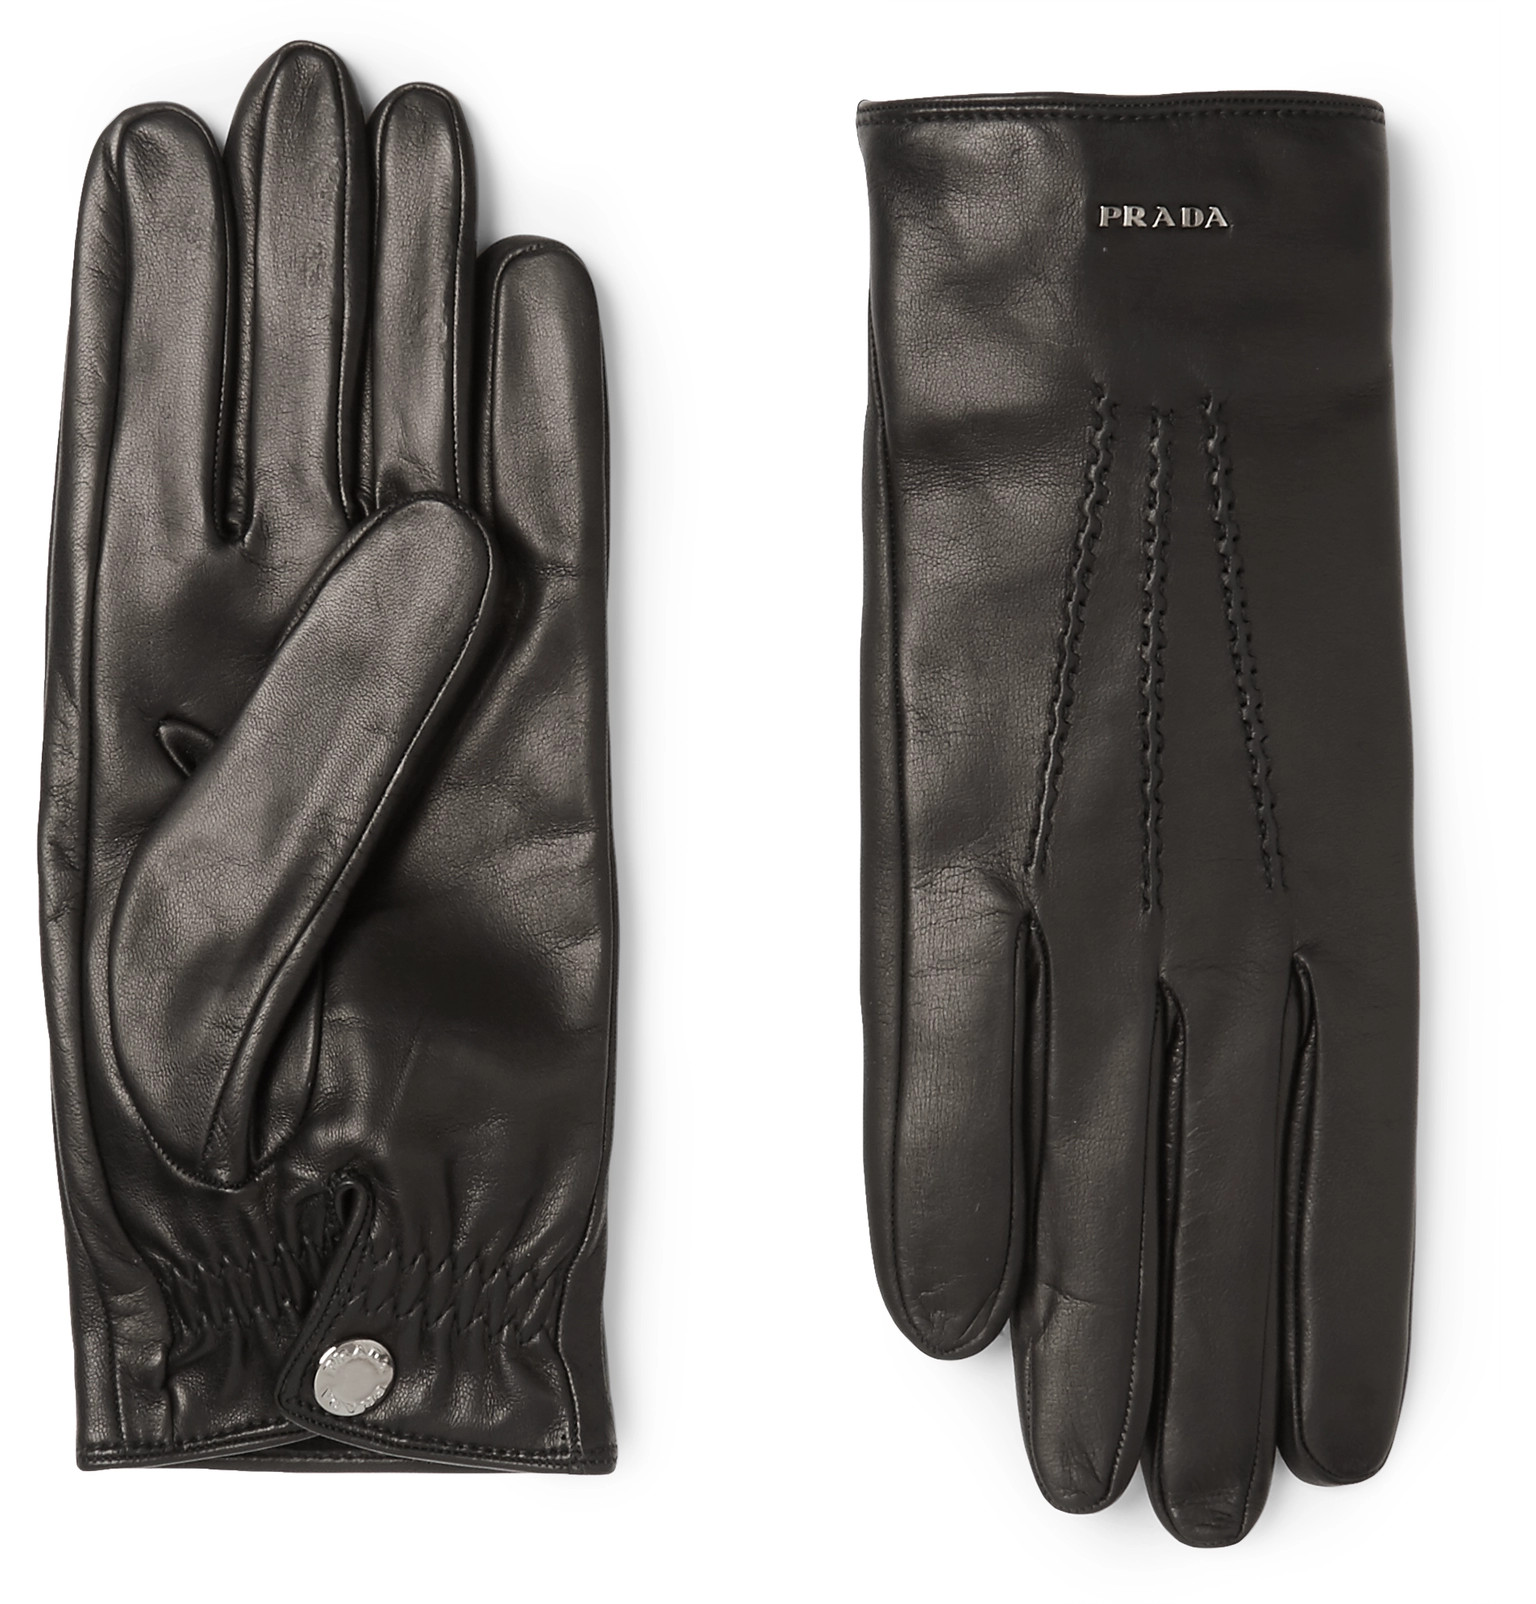 Xxl black leather gloves - Pradacashmere Lined Leather Gloves